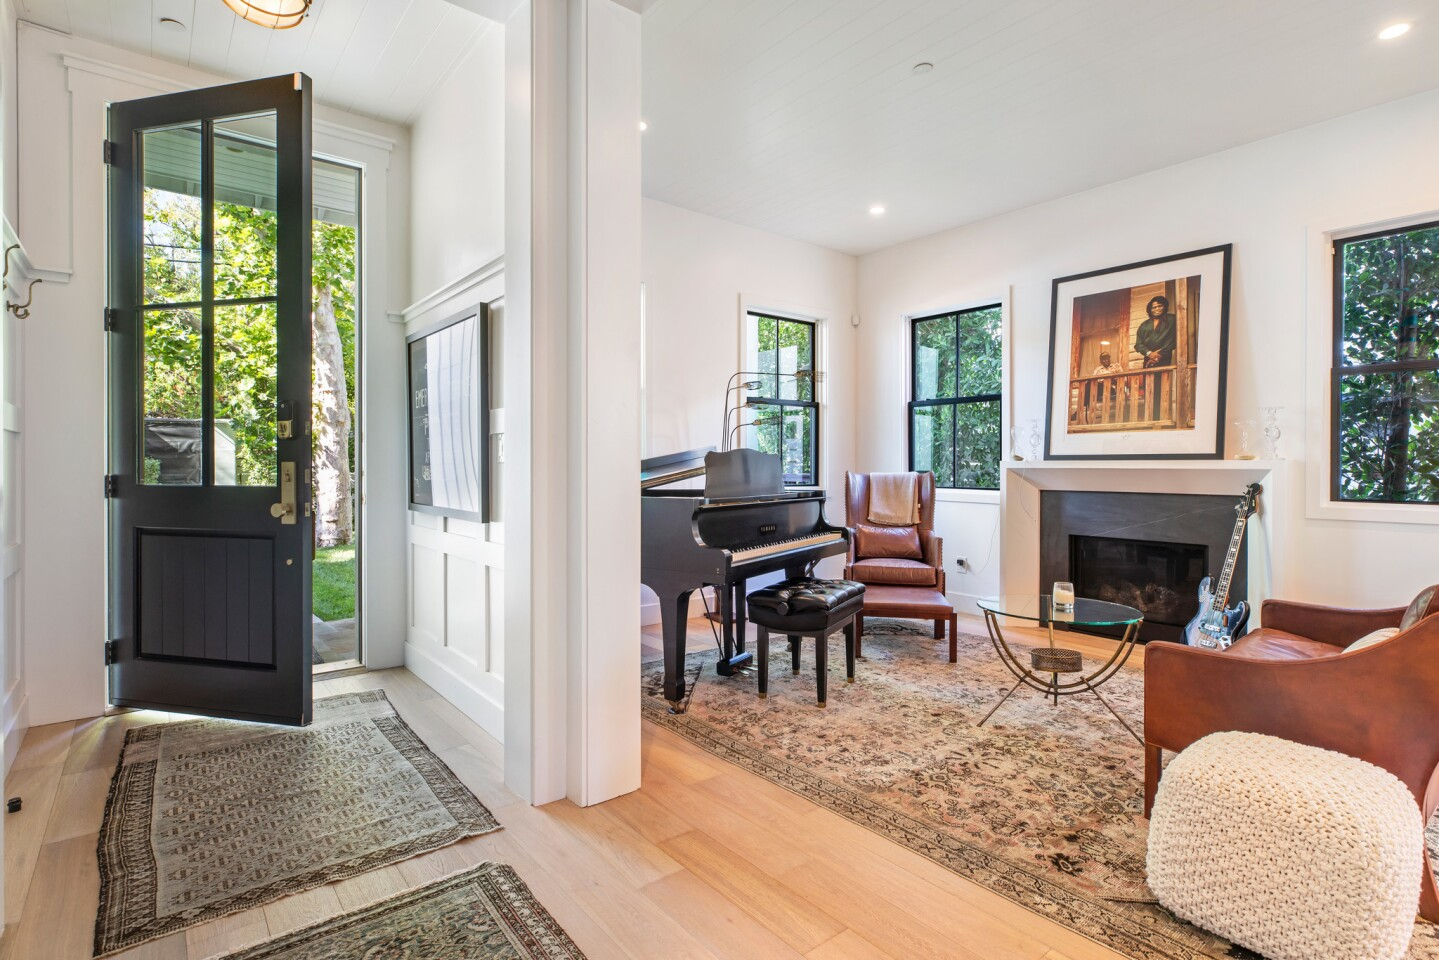 Joe Jonas' Sherman Oaks home | Hot Property